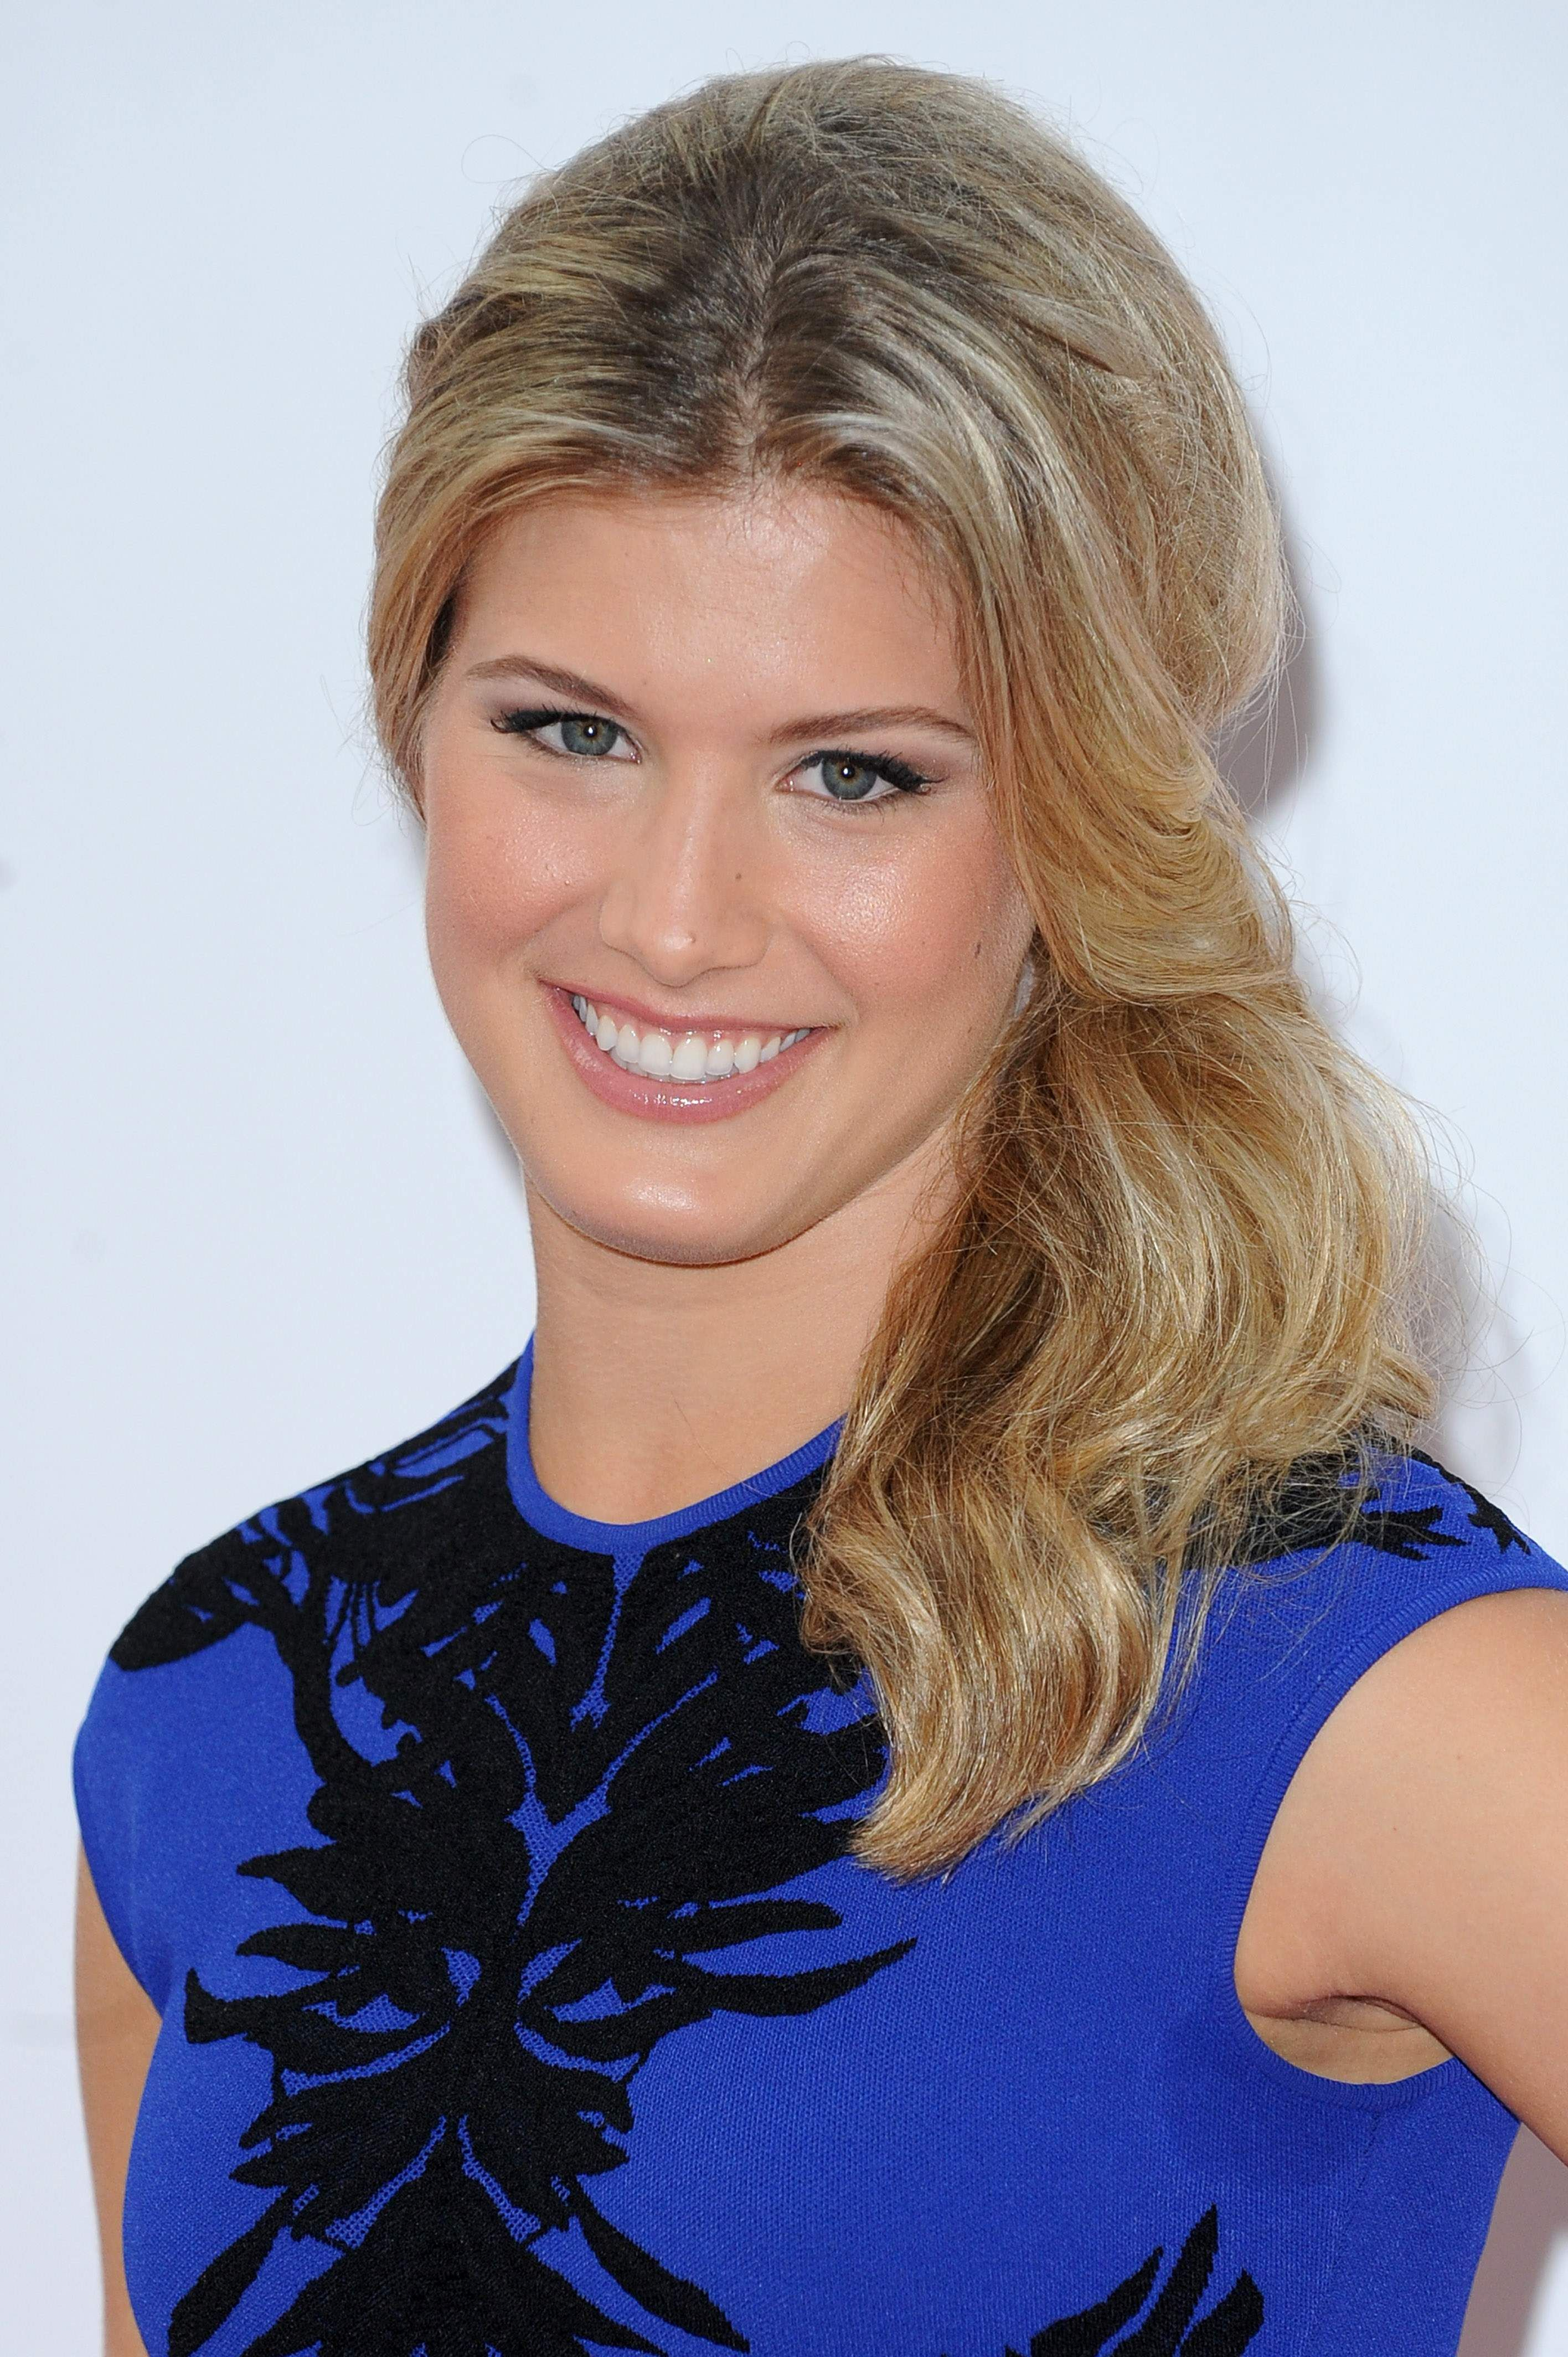 Pin By Game Set Fab On Wta Strong Is Beautiful Eugenie Bouchard Side Hairstyles Tennis Players Female